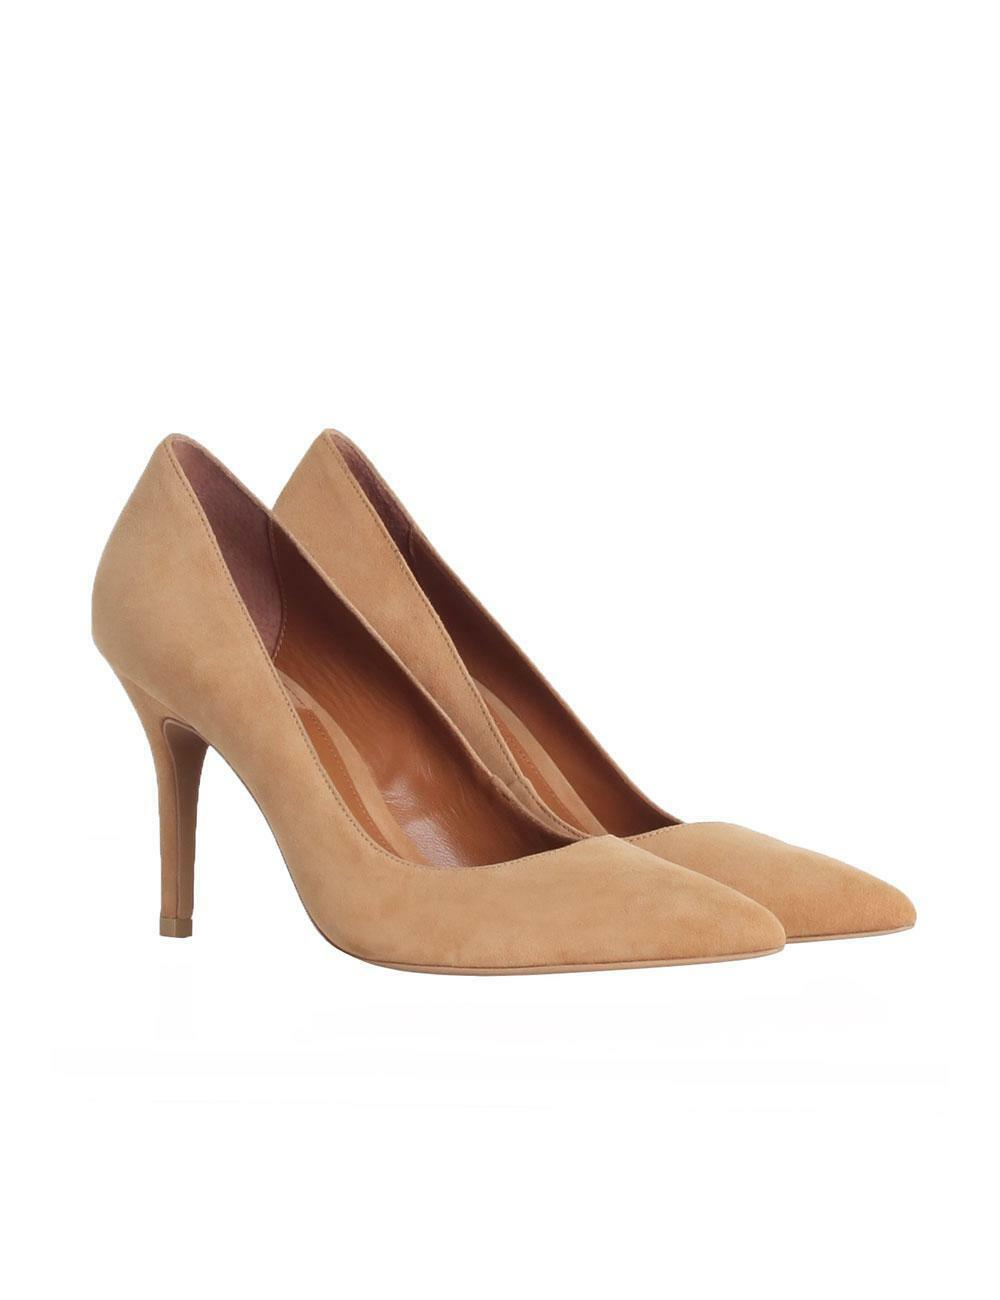 Zimmermann Pointed Pump Heels, Shoes | High Heels, Pump Grey Suede | All Sizes | 550 RRP 1a1161